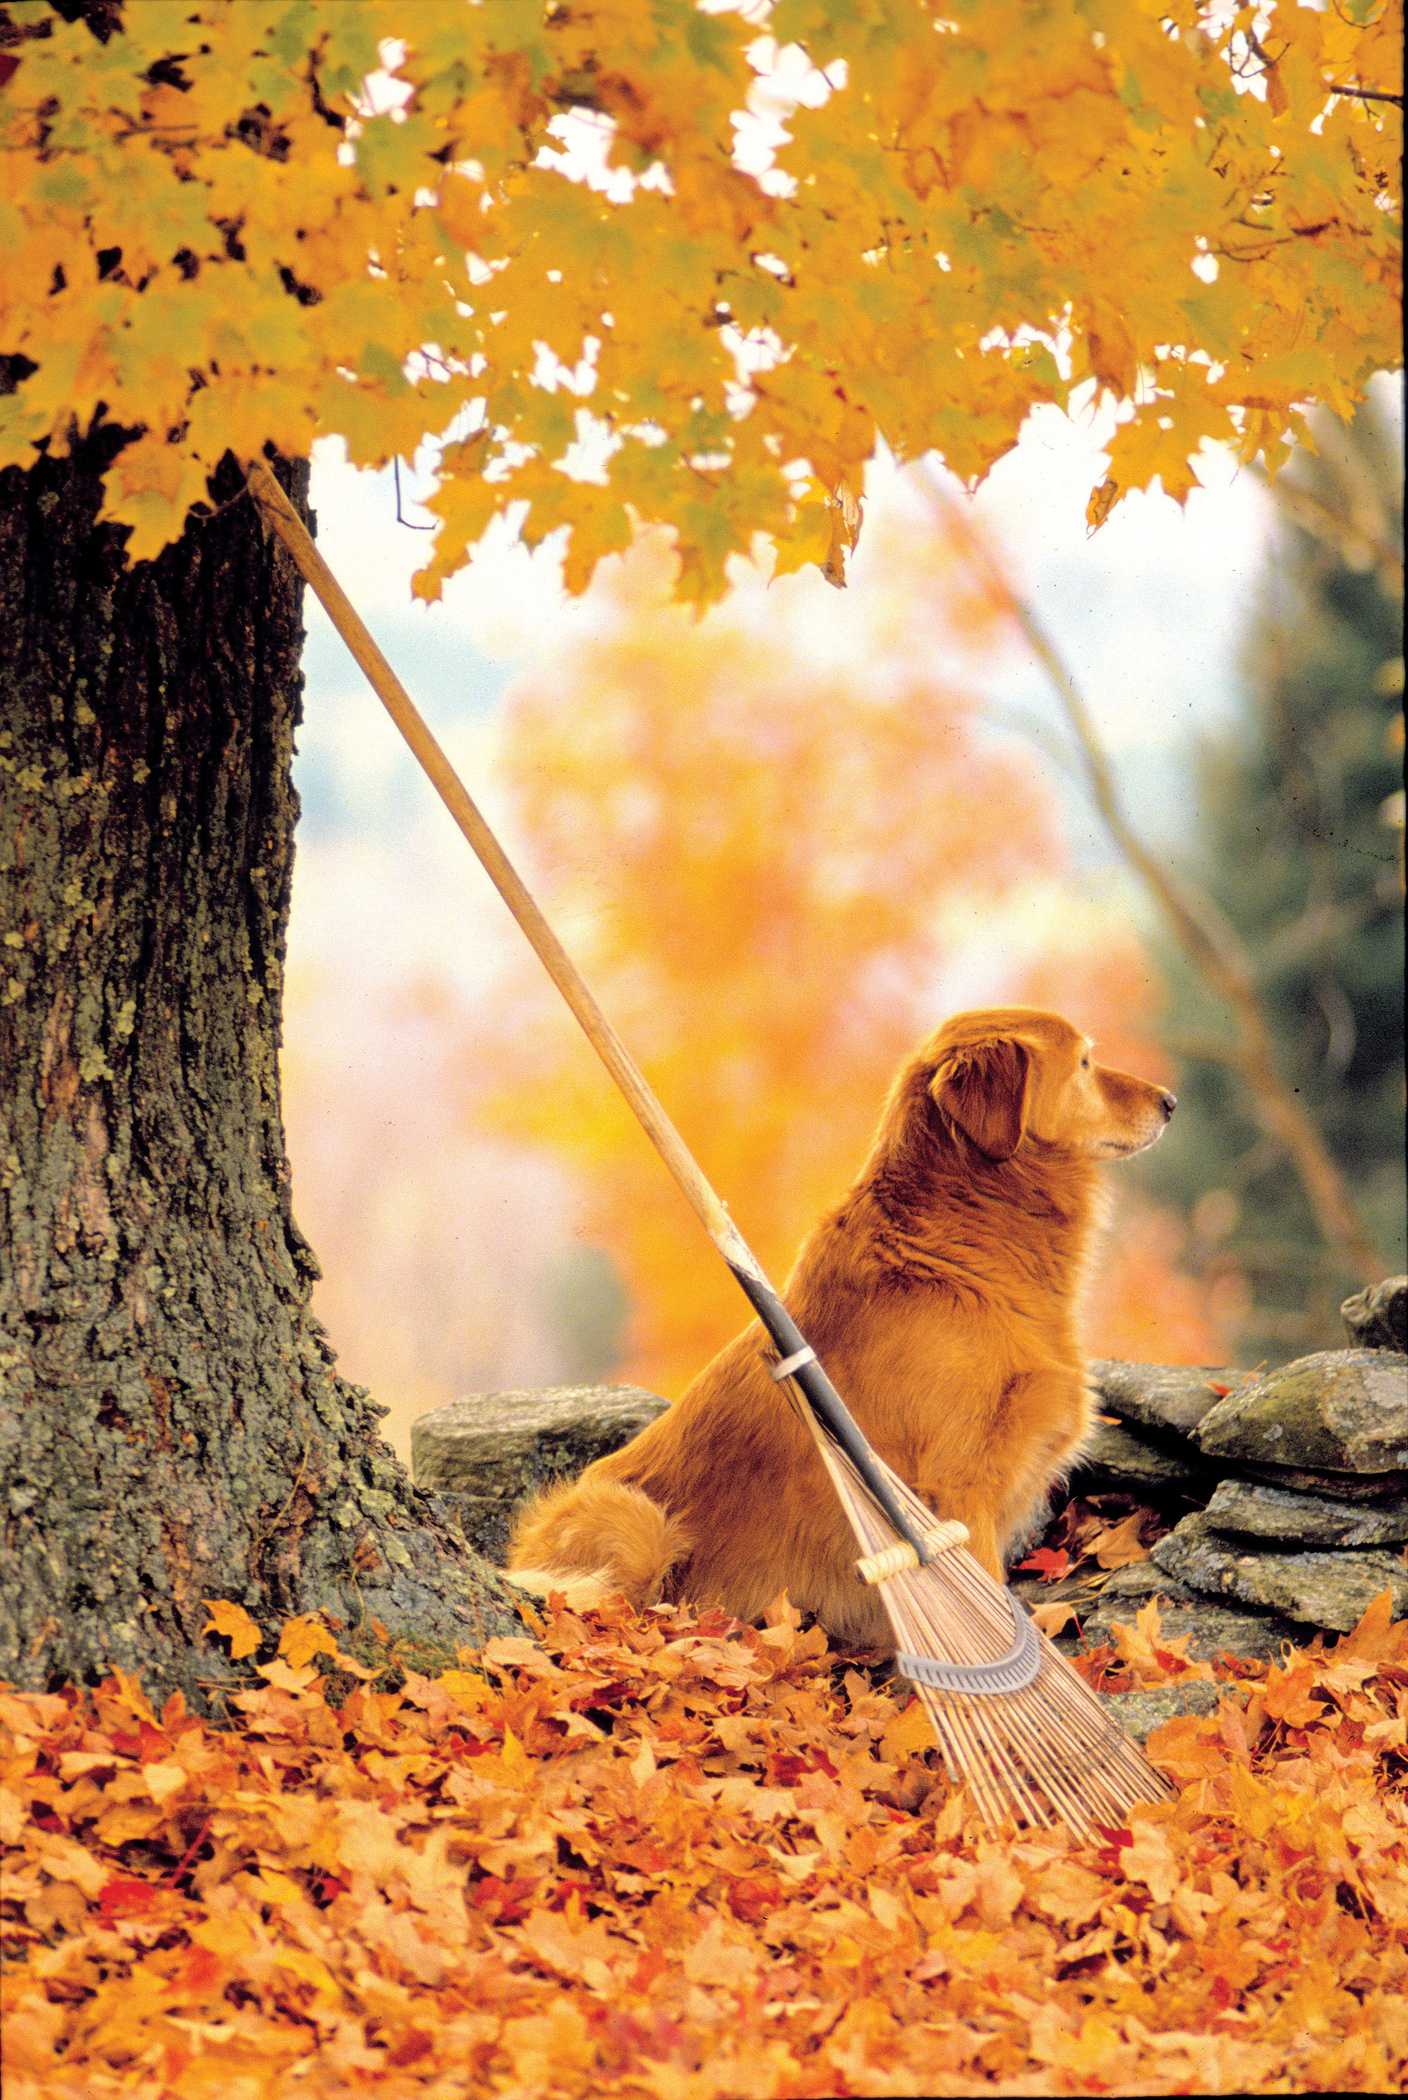 Golden Retriever - Fall image